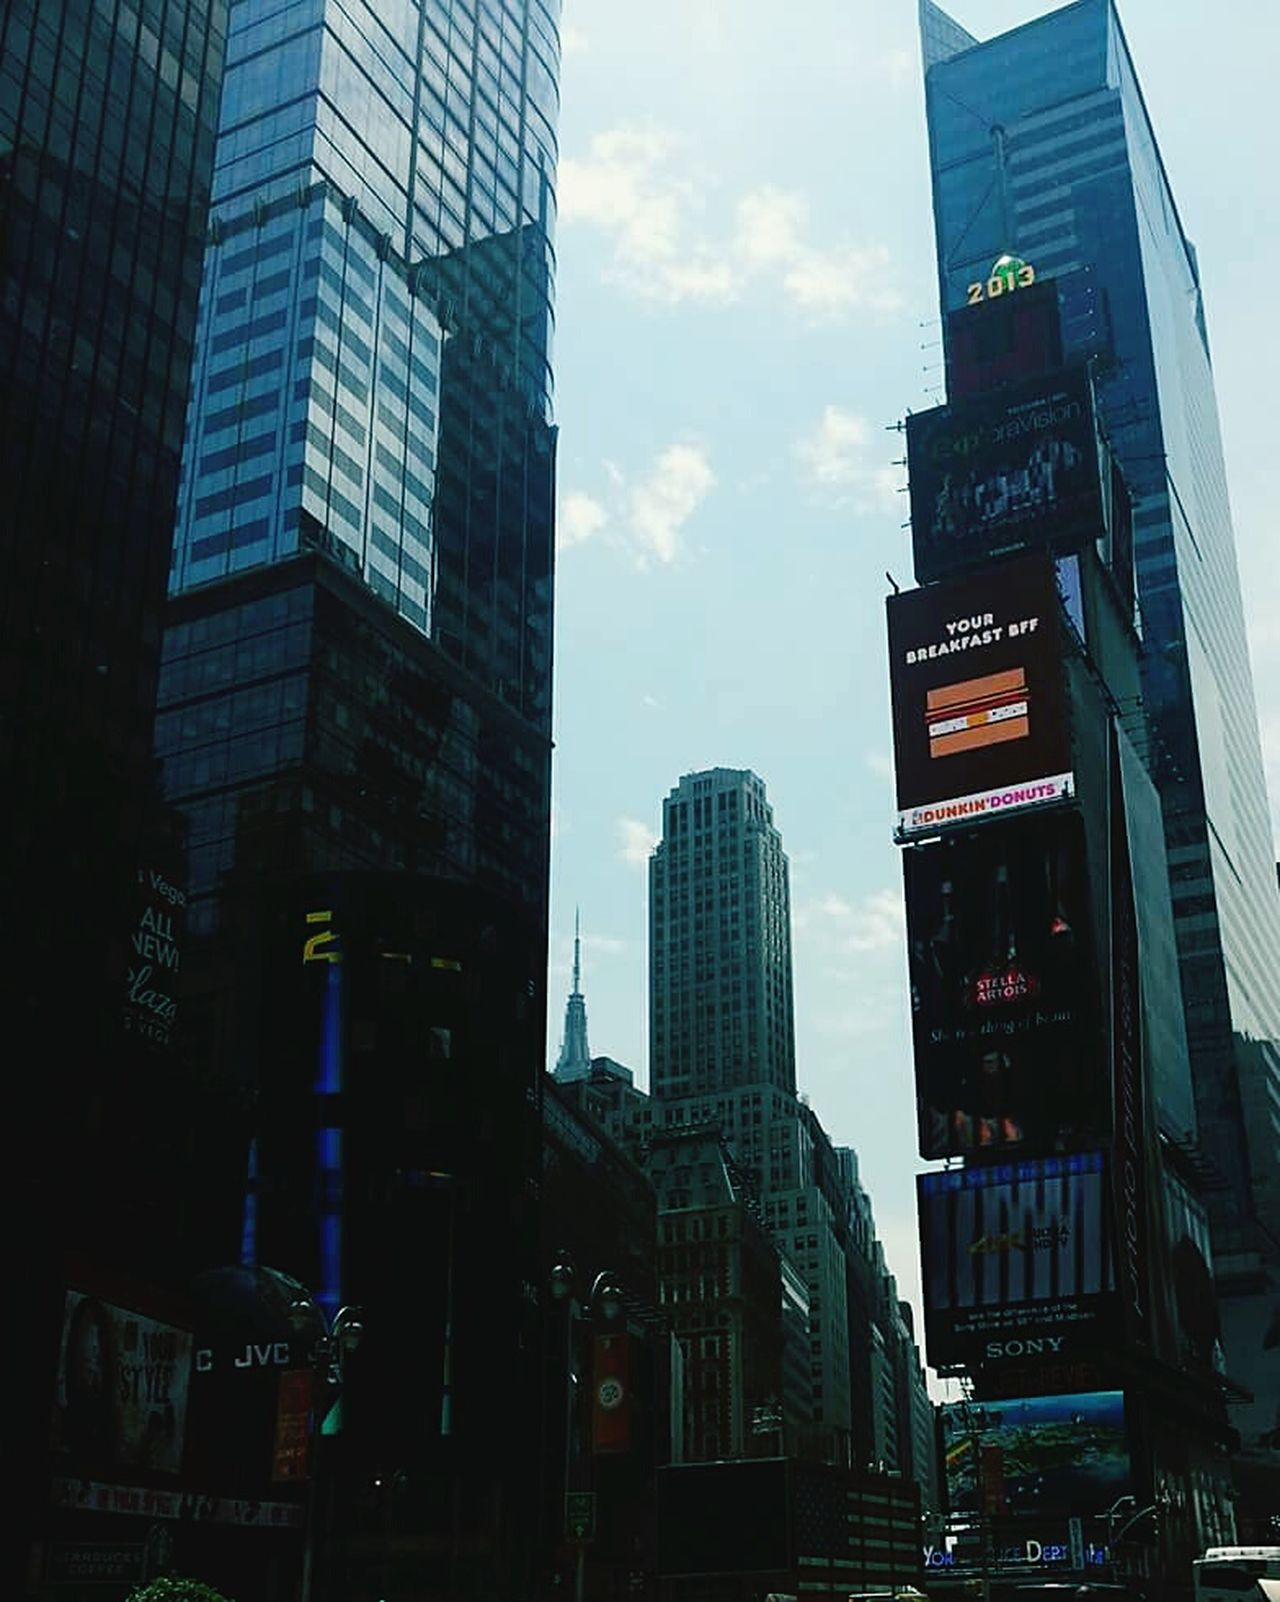 City Skyscraper Travel Destinations Travel Outdoors City Life NYC LIFE ♥ Time Square, New York Living Life To The Fullest❤ NYC Street Photography Livetotravel Livethemoment Love Life Live, Love, Laugh Love❤ Loving Life! Loveit Business Finance And Industry Architecture Urban Skyline Day Life Is Beautiful Downtown District Modern City Life